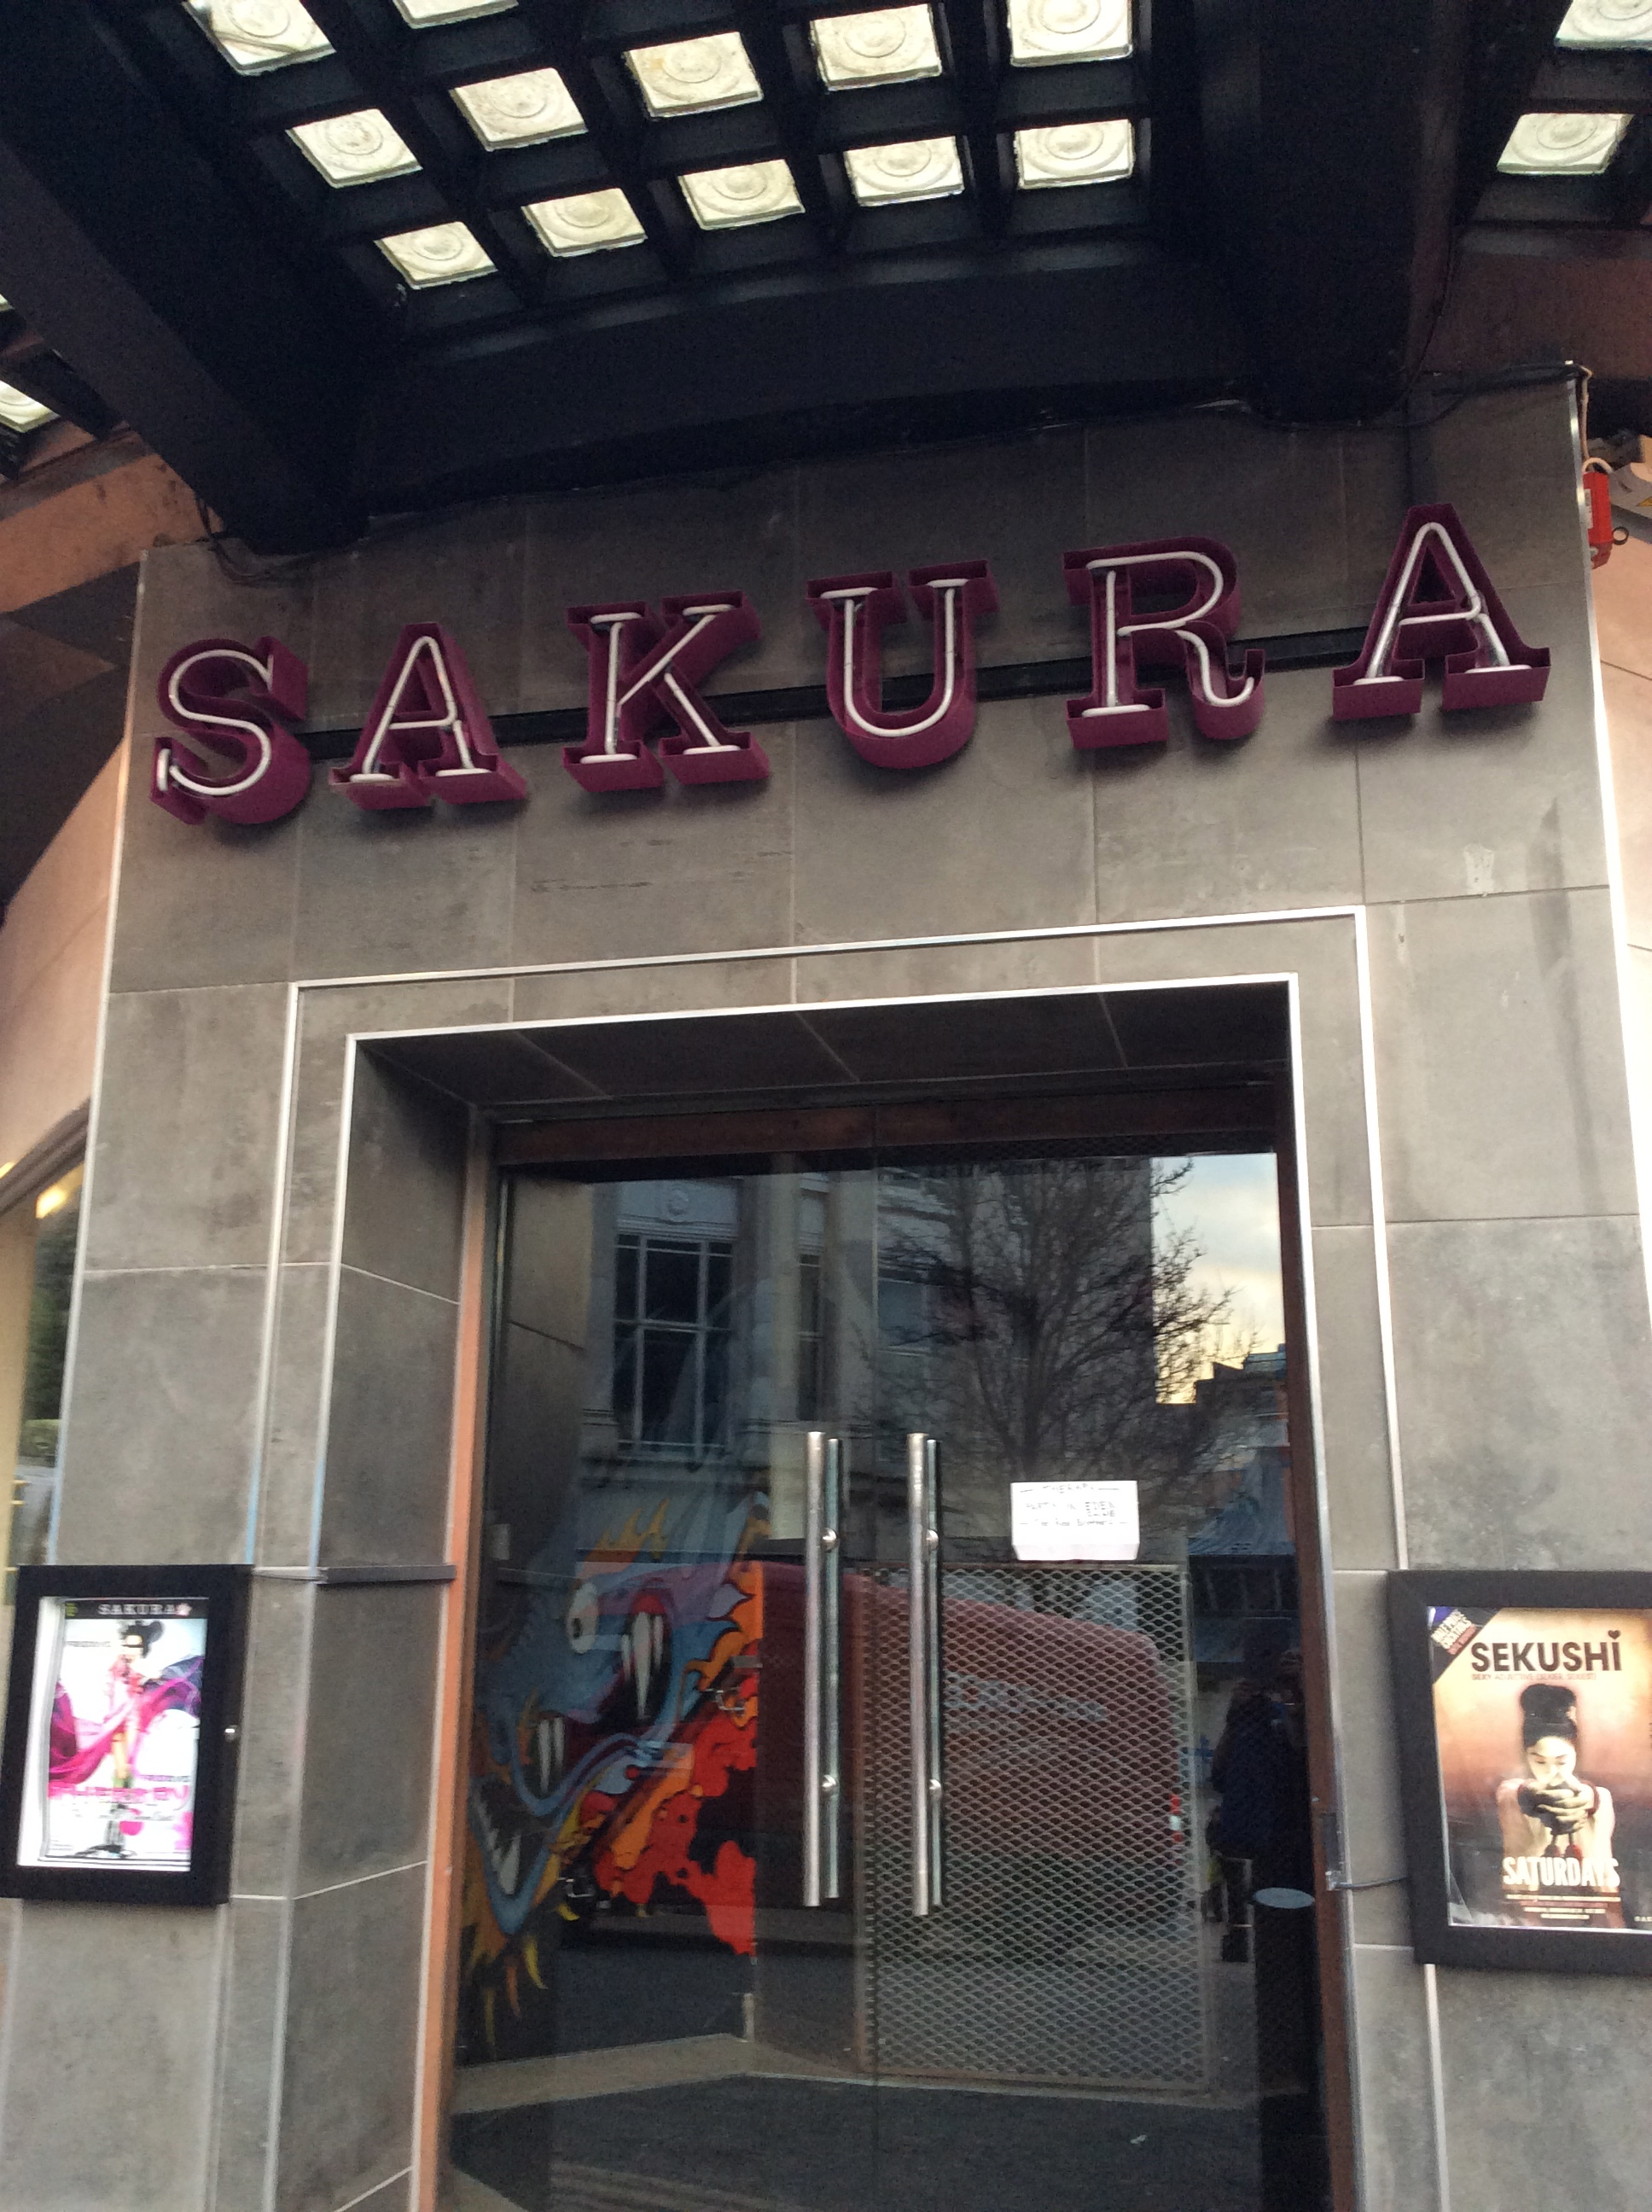 What even is a sakura anyway?